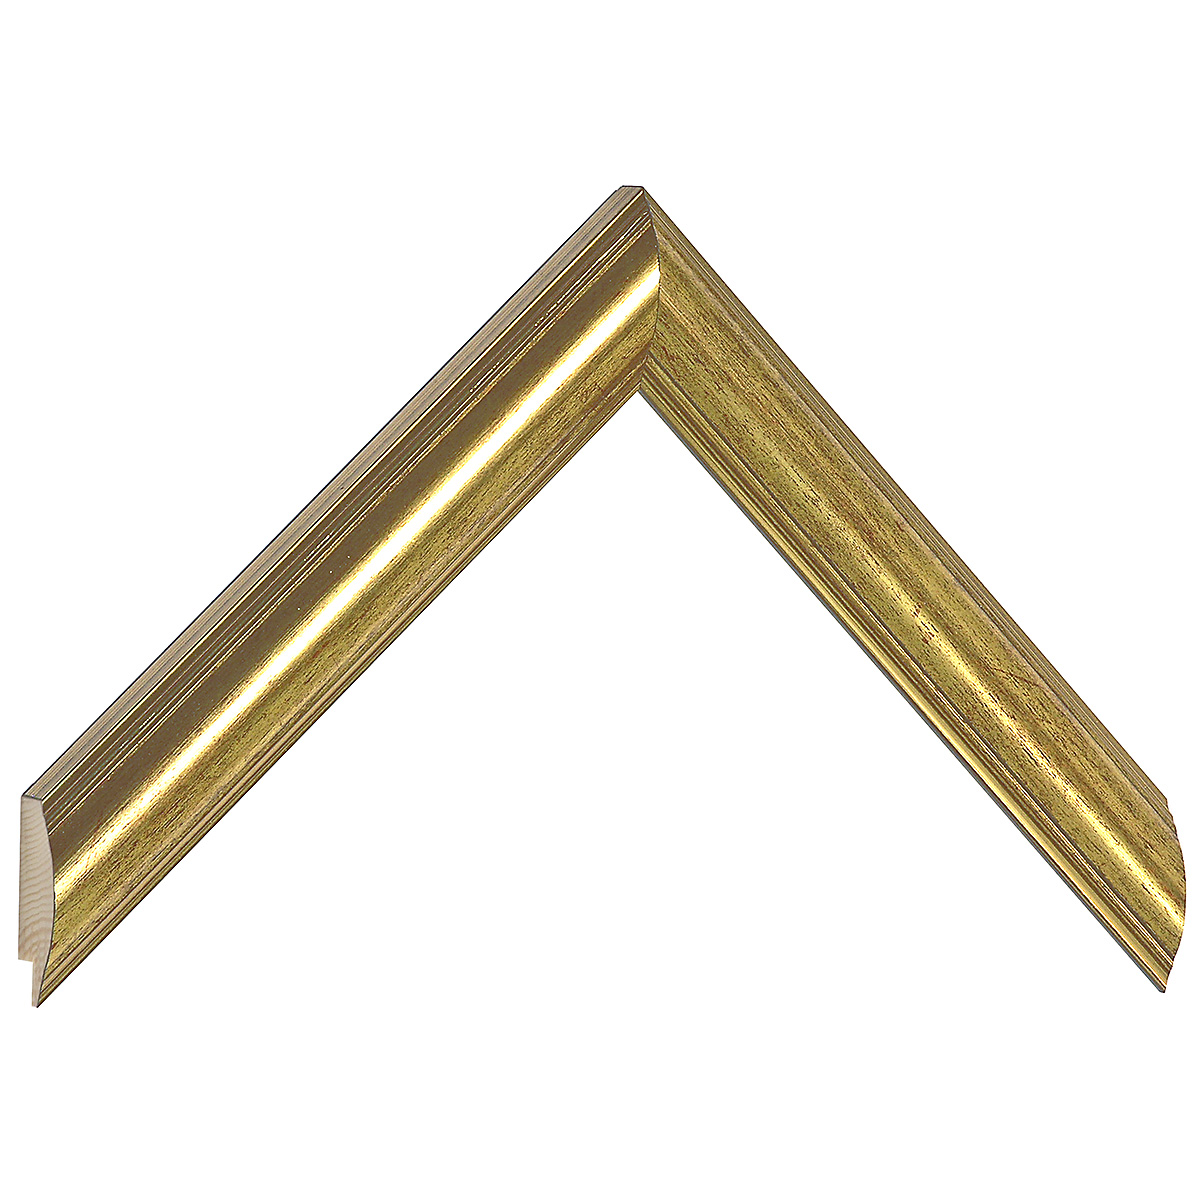 Moulding ayous - Larg.25mm Height 19 - Gold